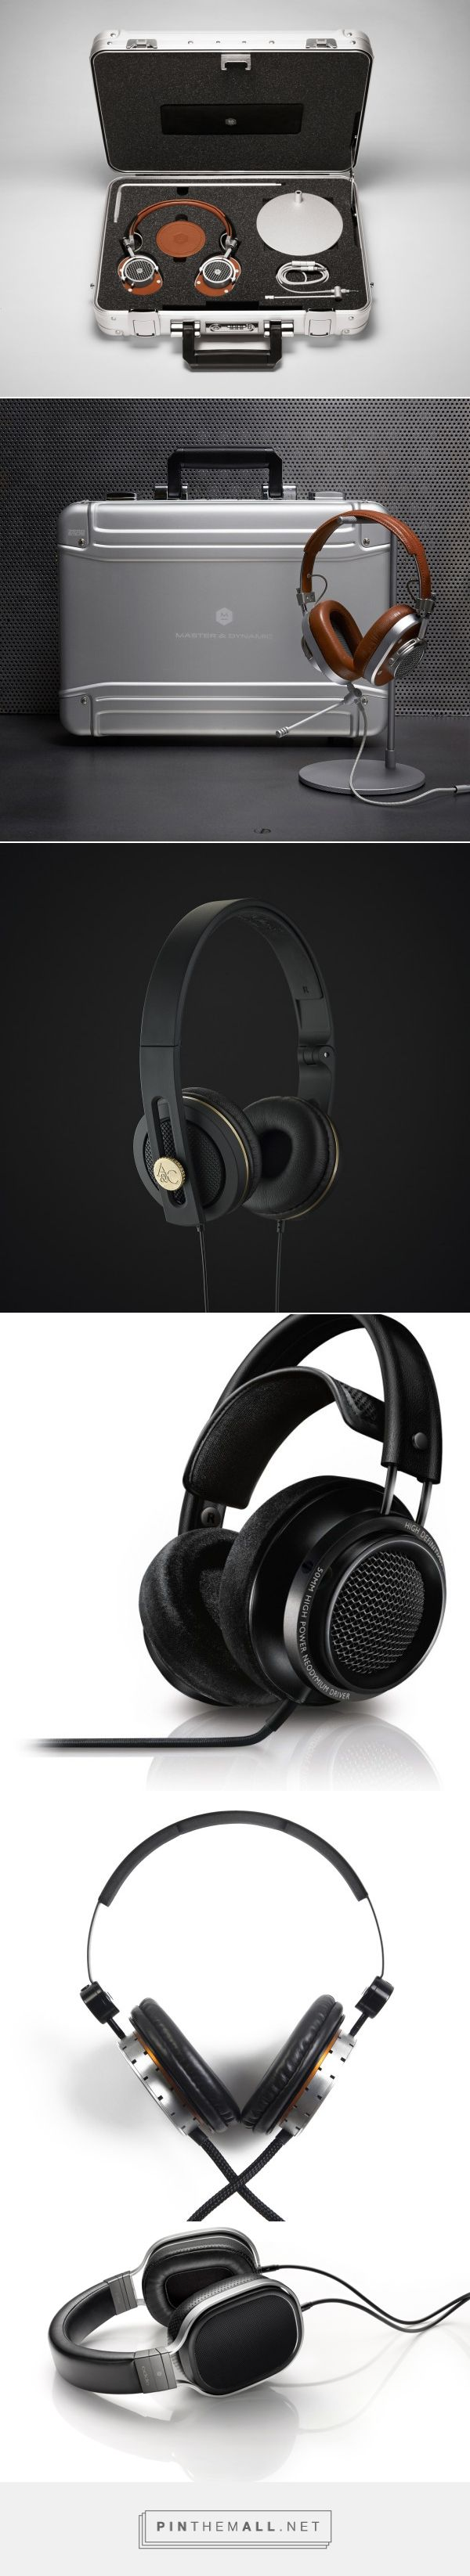 5 Headphones for Audiophiles - Design Milk - created via http://pinthemall.net